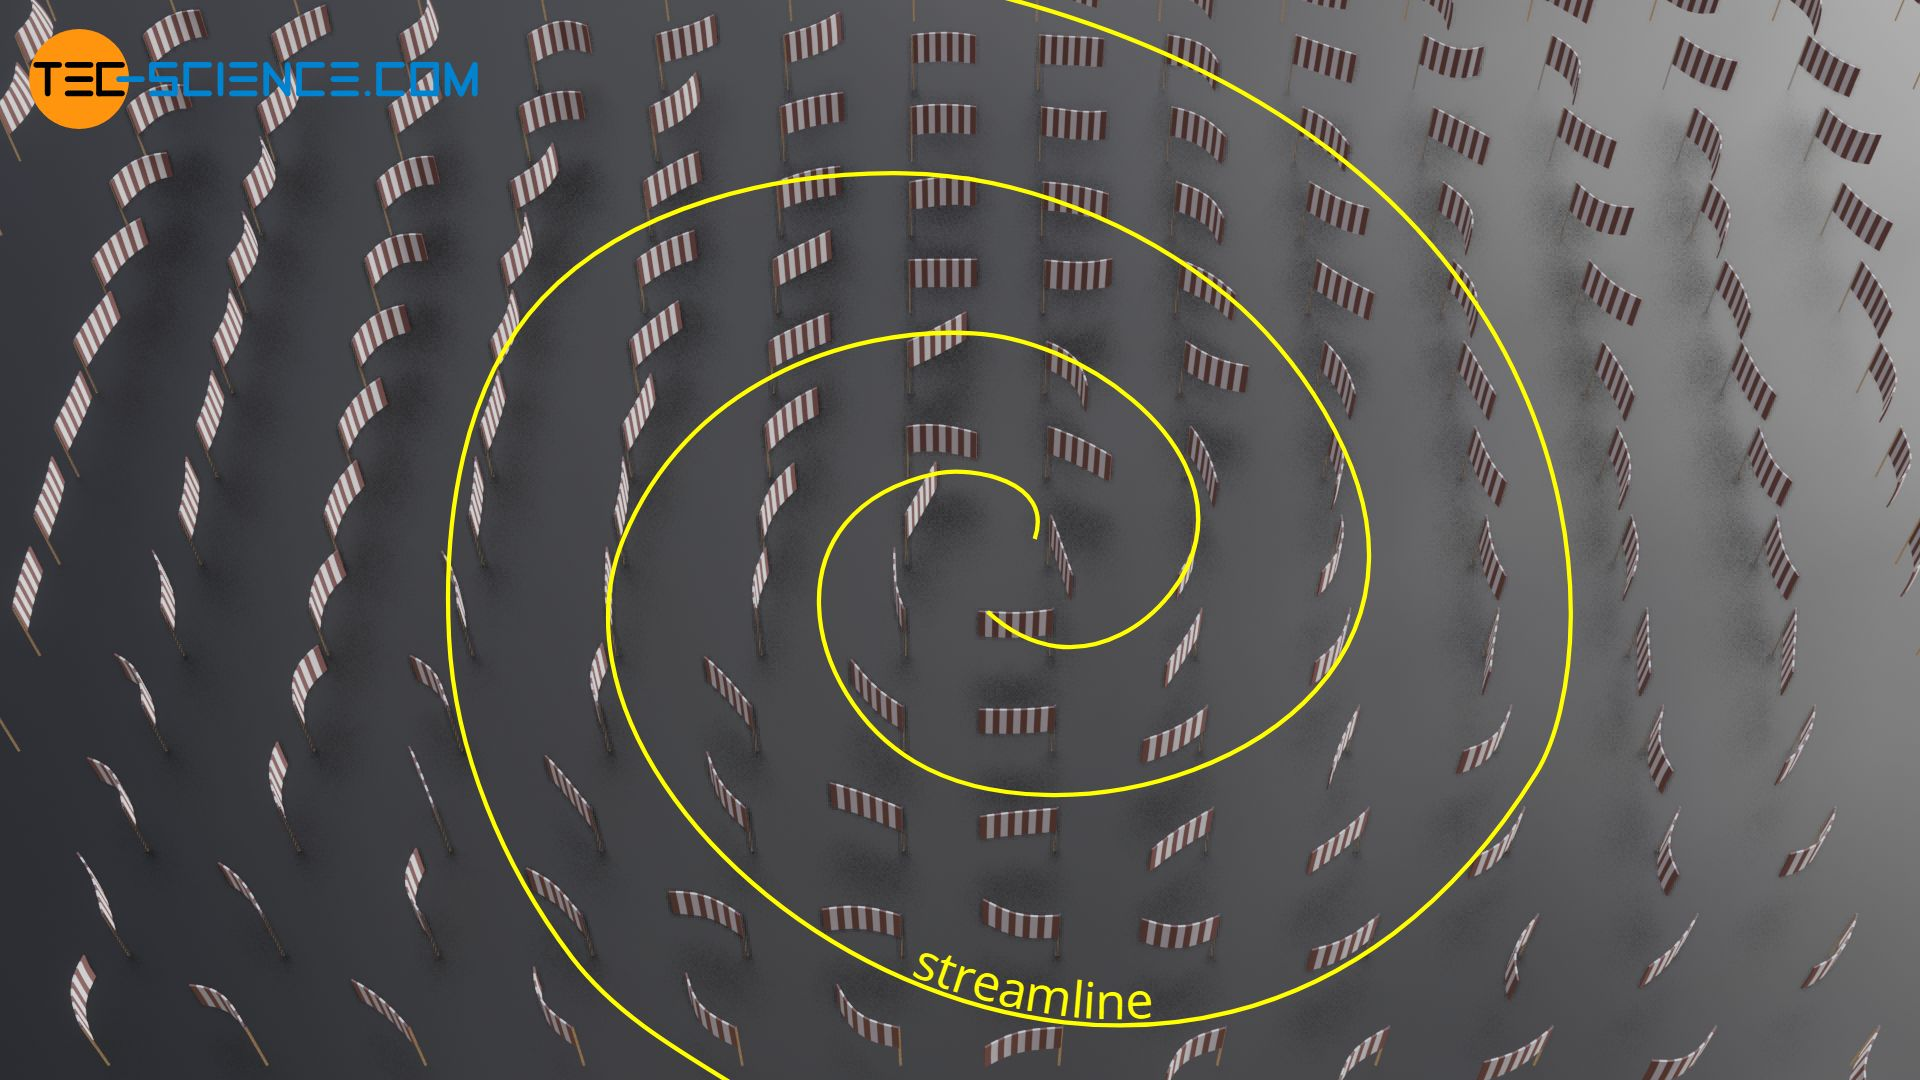 Streamlines of an air vortex illustrated by flags